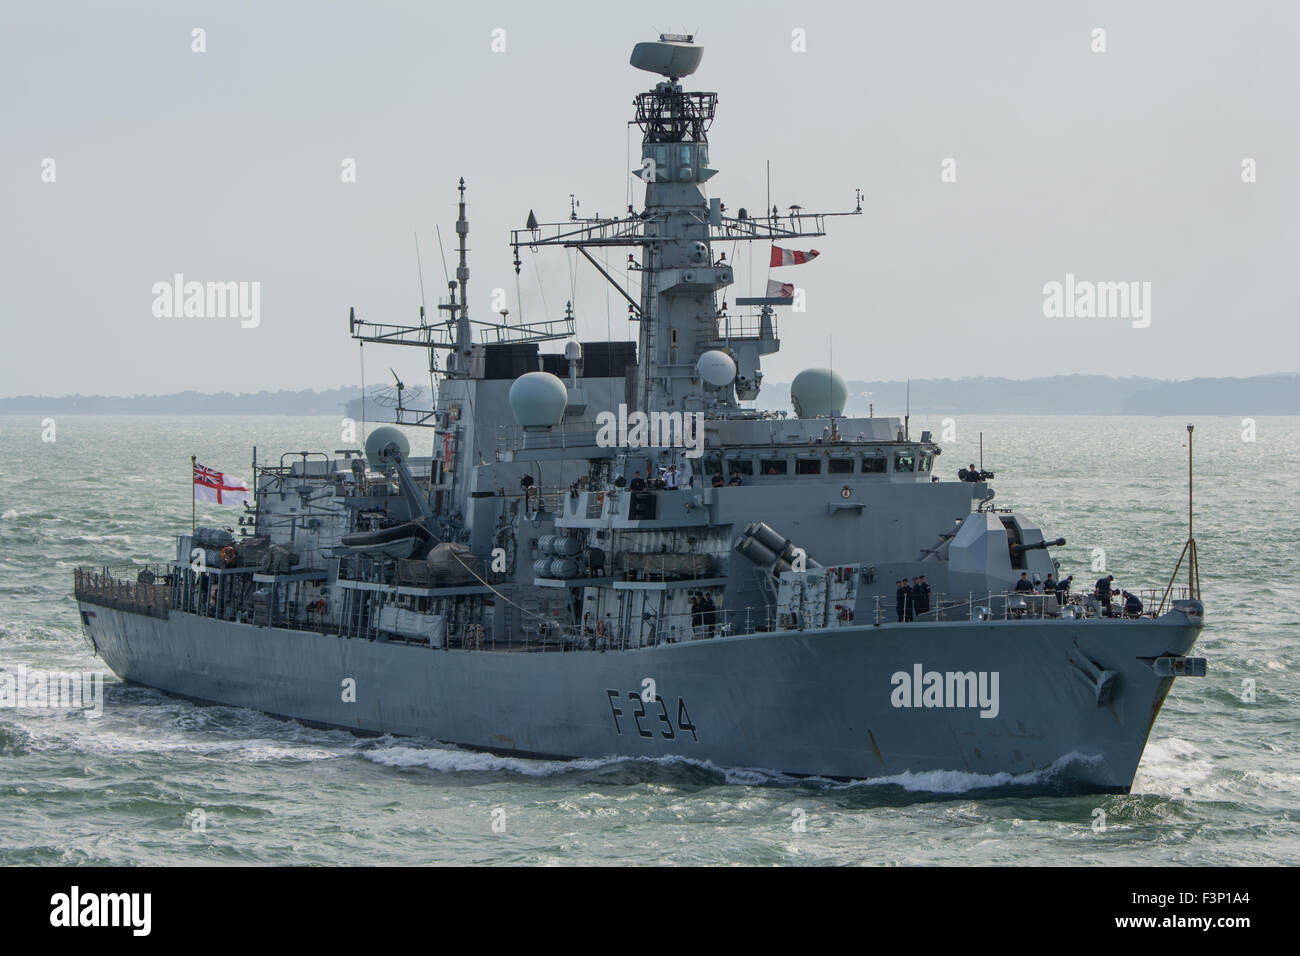 The Royal Navy Type 23 Frigate, HMS Iron Duke, arriving at Portsmouth, UK on 11/9/15. The vessel is currently a - Stock Image